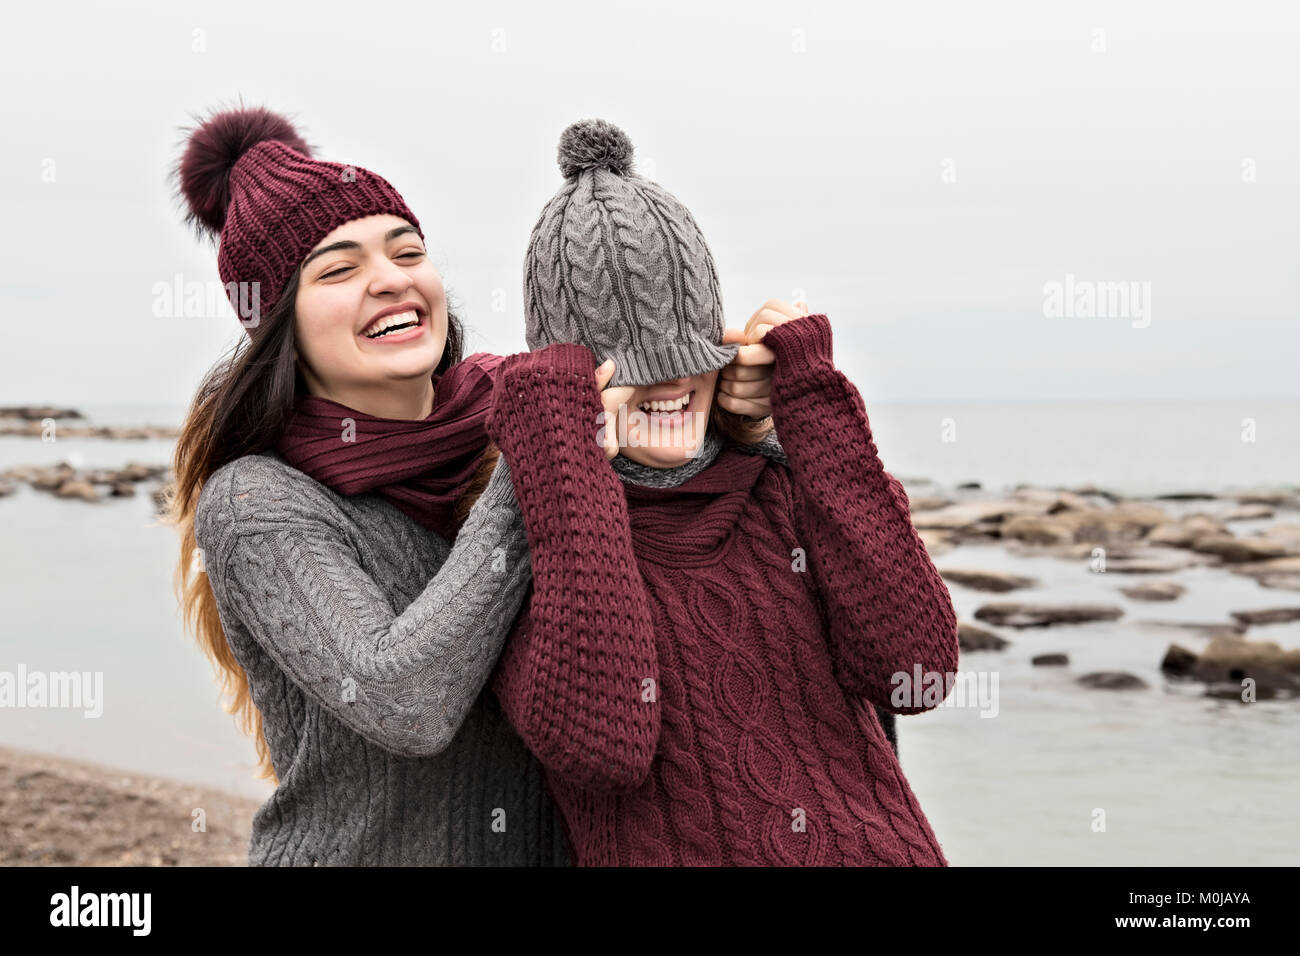 e78b37f4229 Two friends playing on the beach wearing knit hats and scarves Stock ...